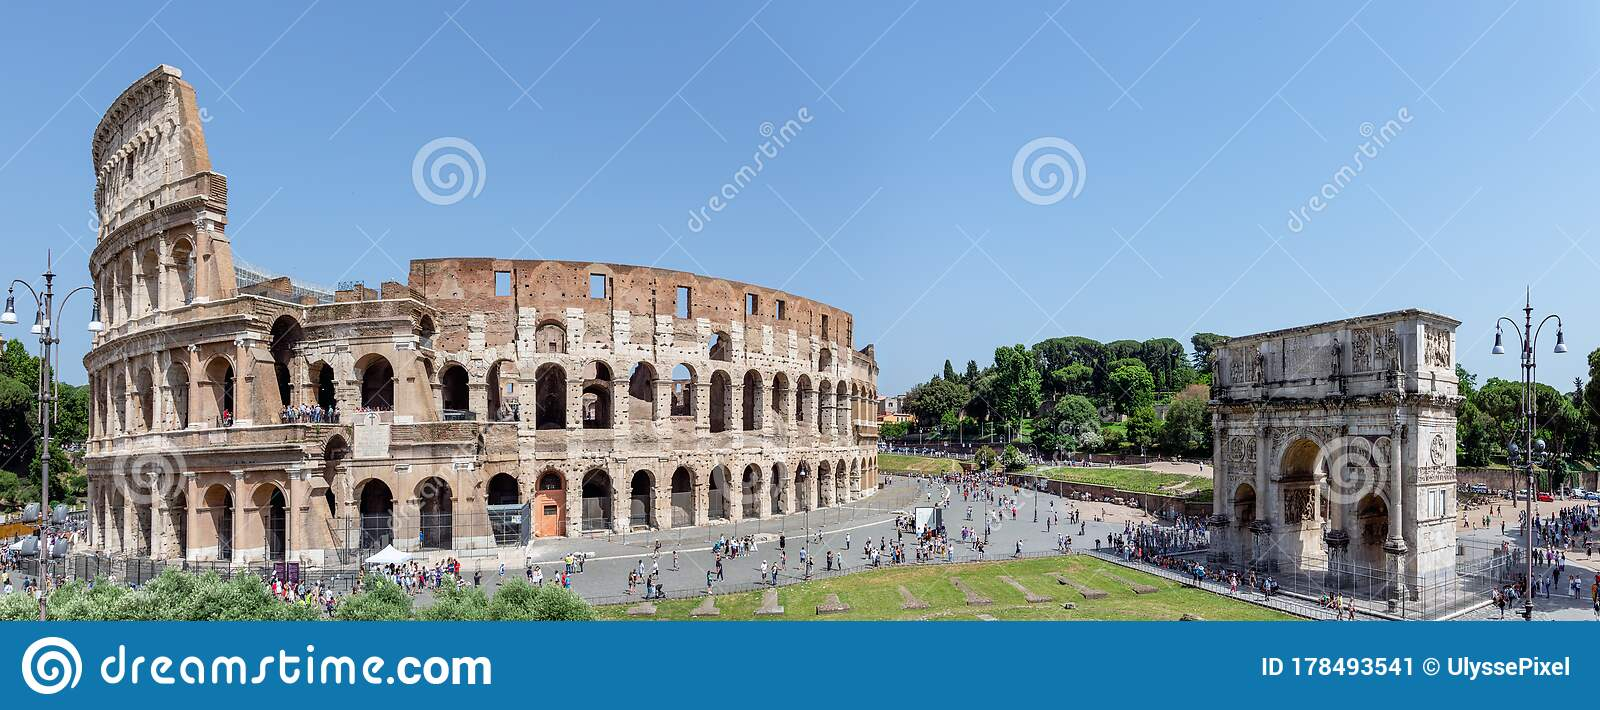 Colosseum And Triumphal Arch Of Constantine - Rome, Italy ...